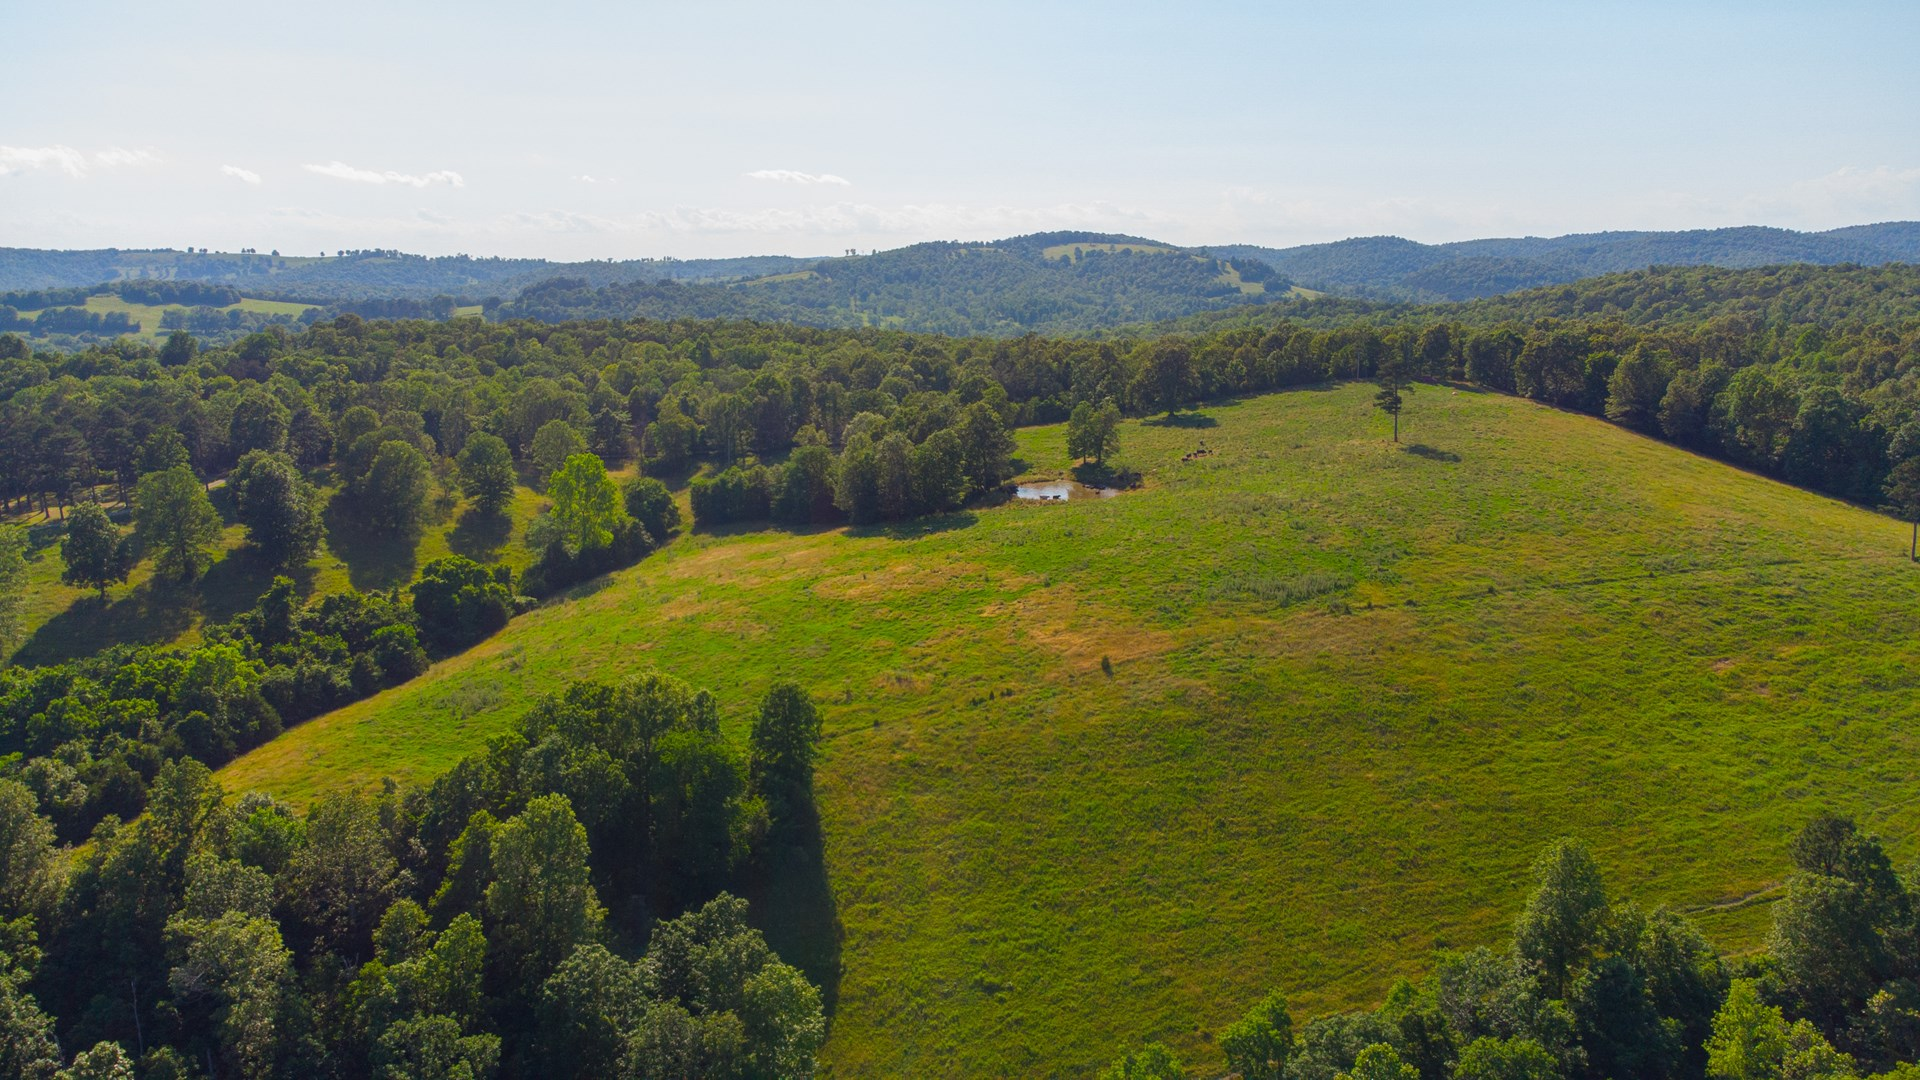 CATTLE FARM AND NATURE RETREAT